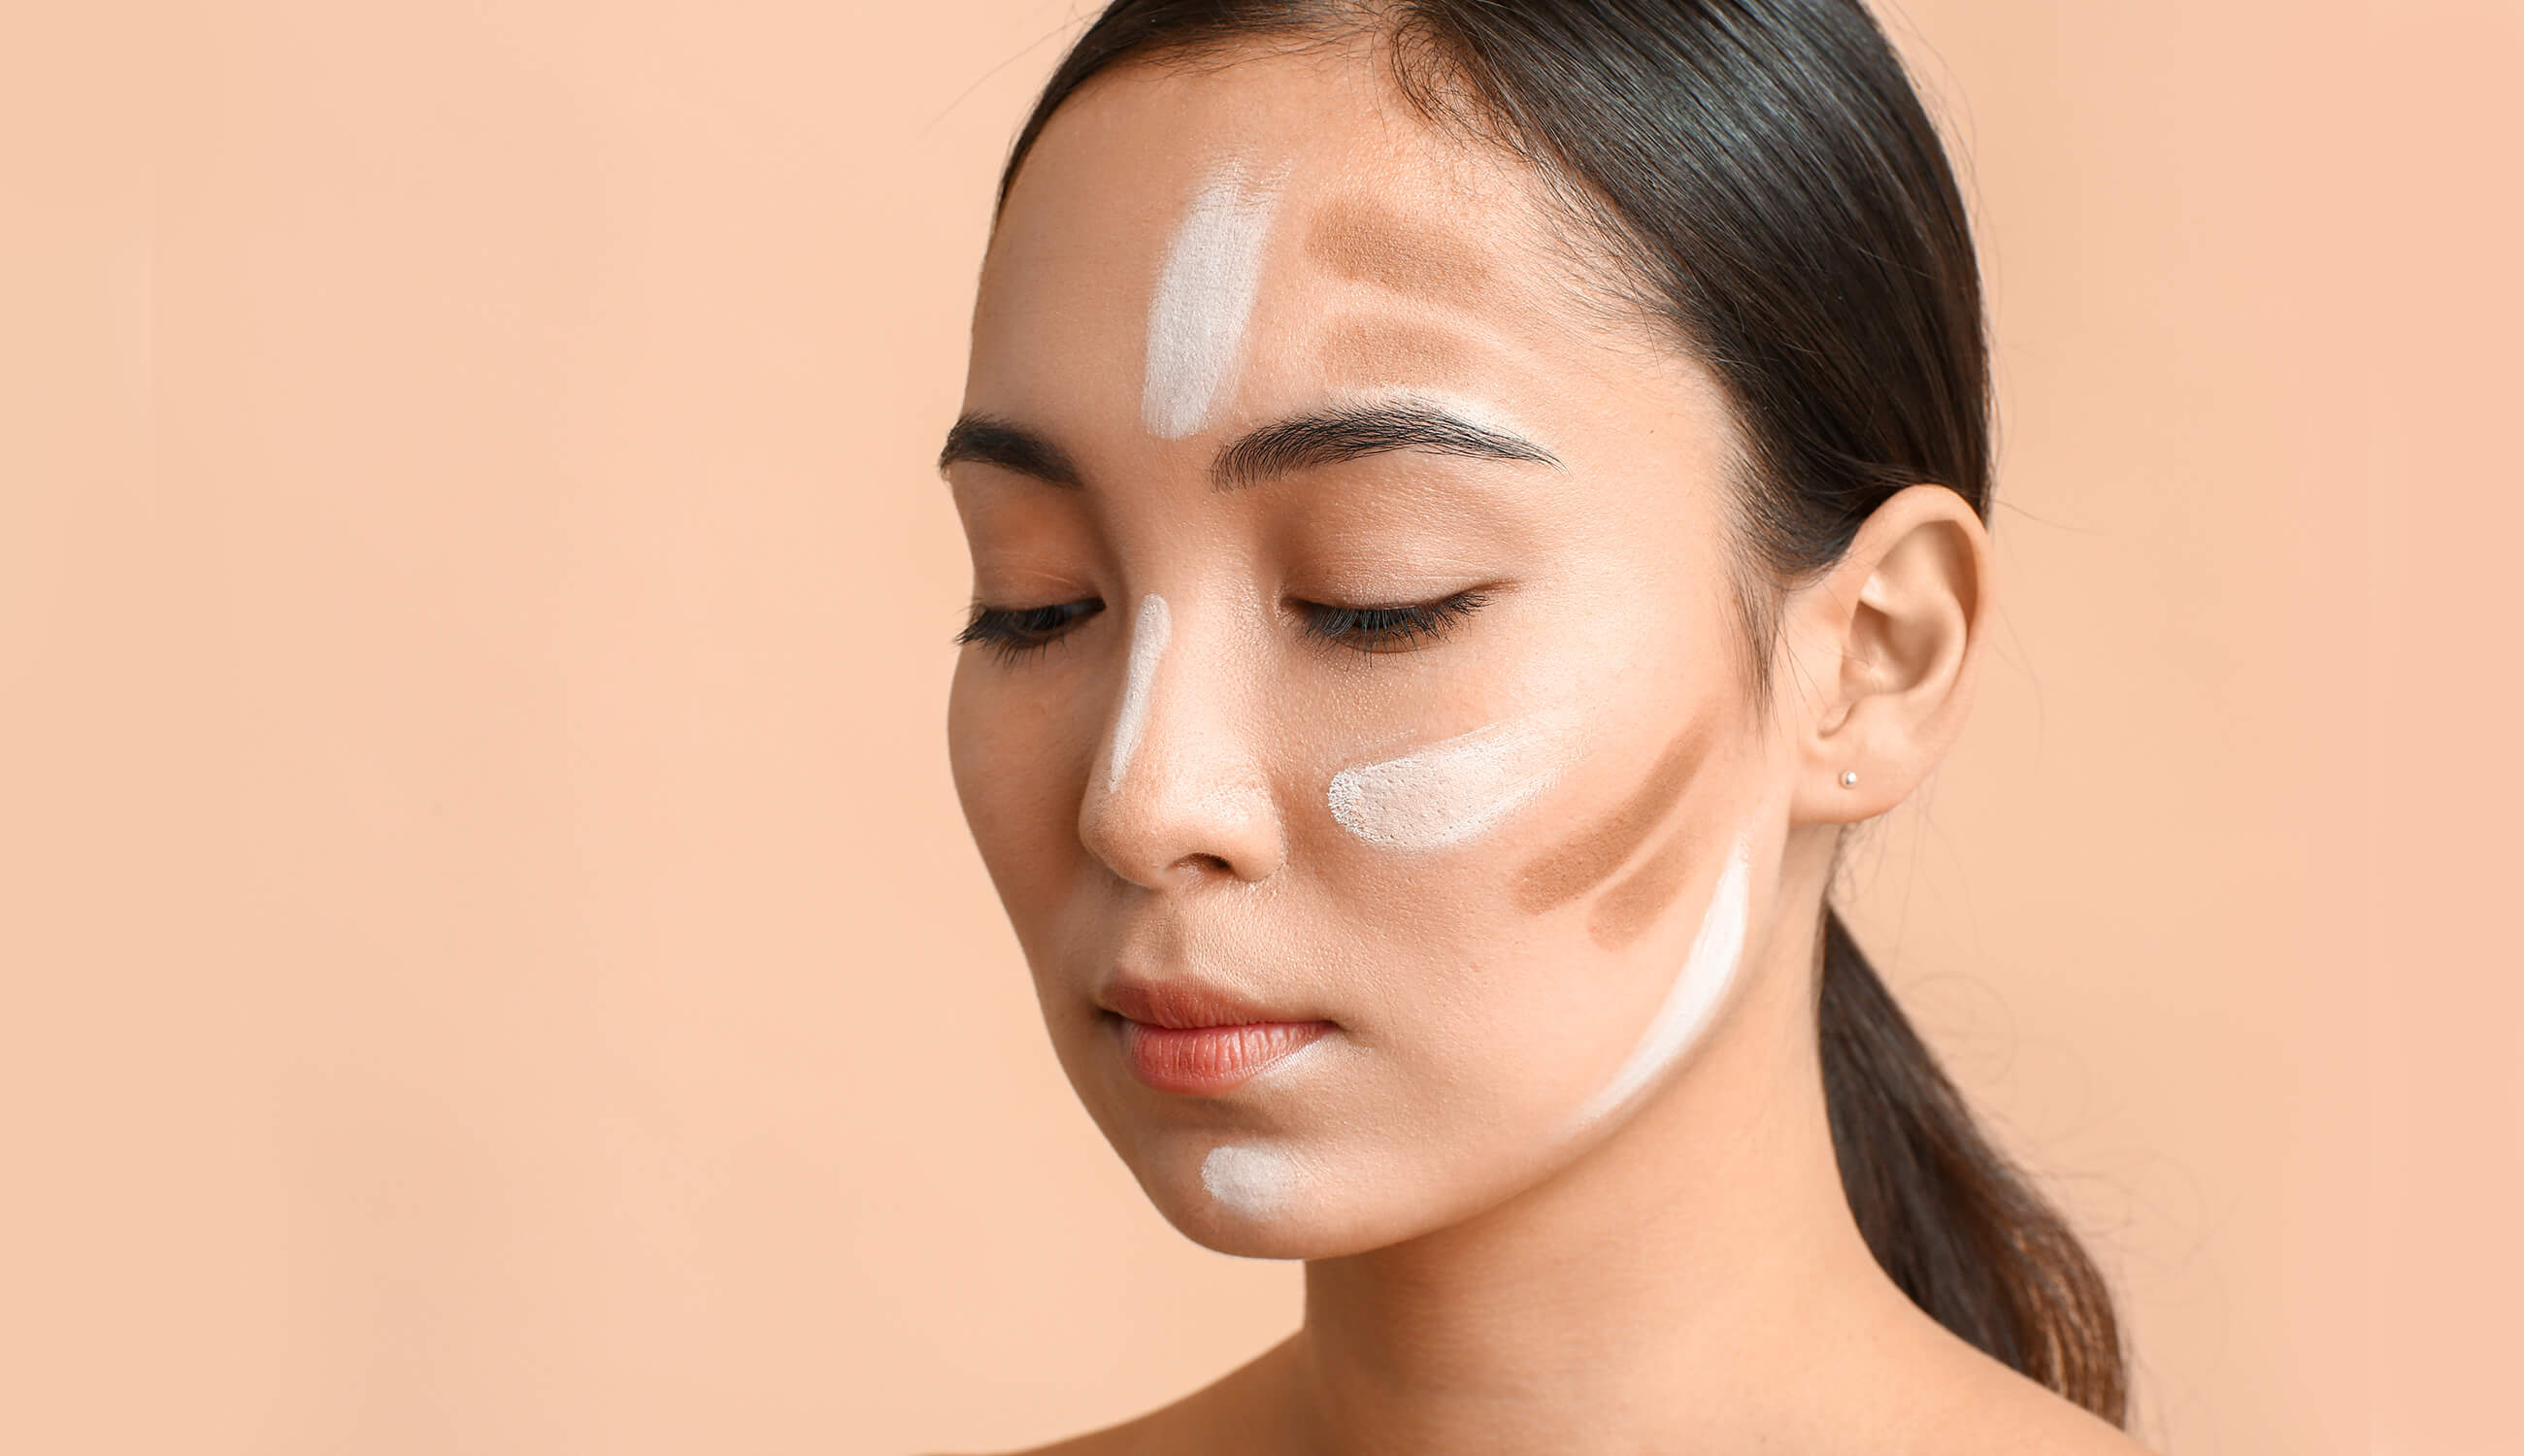 Woman with contouring makuep